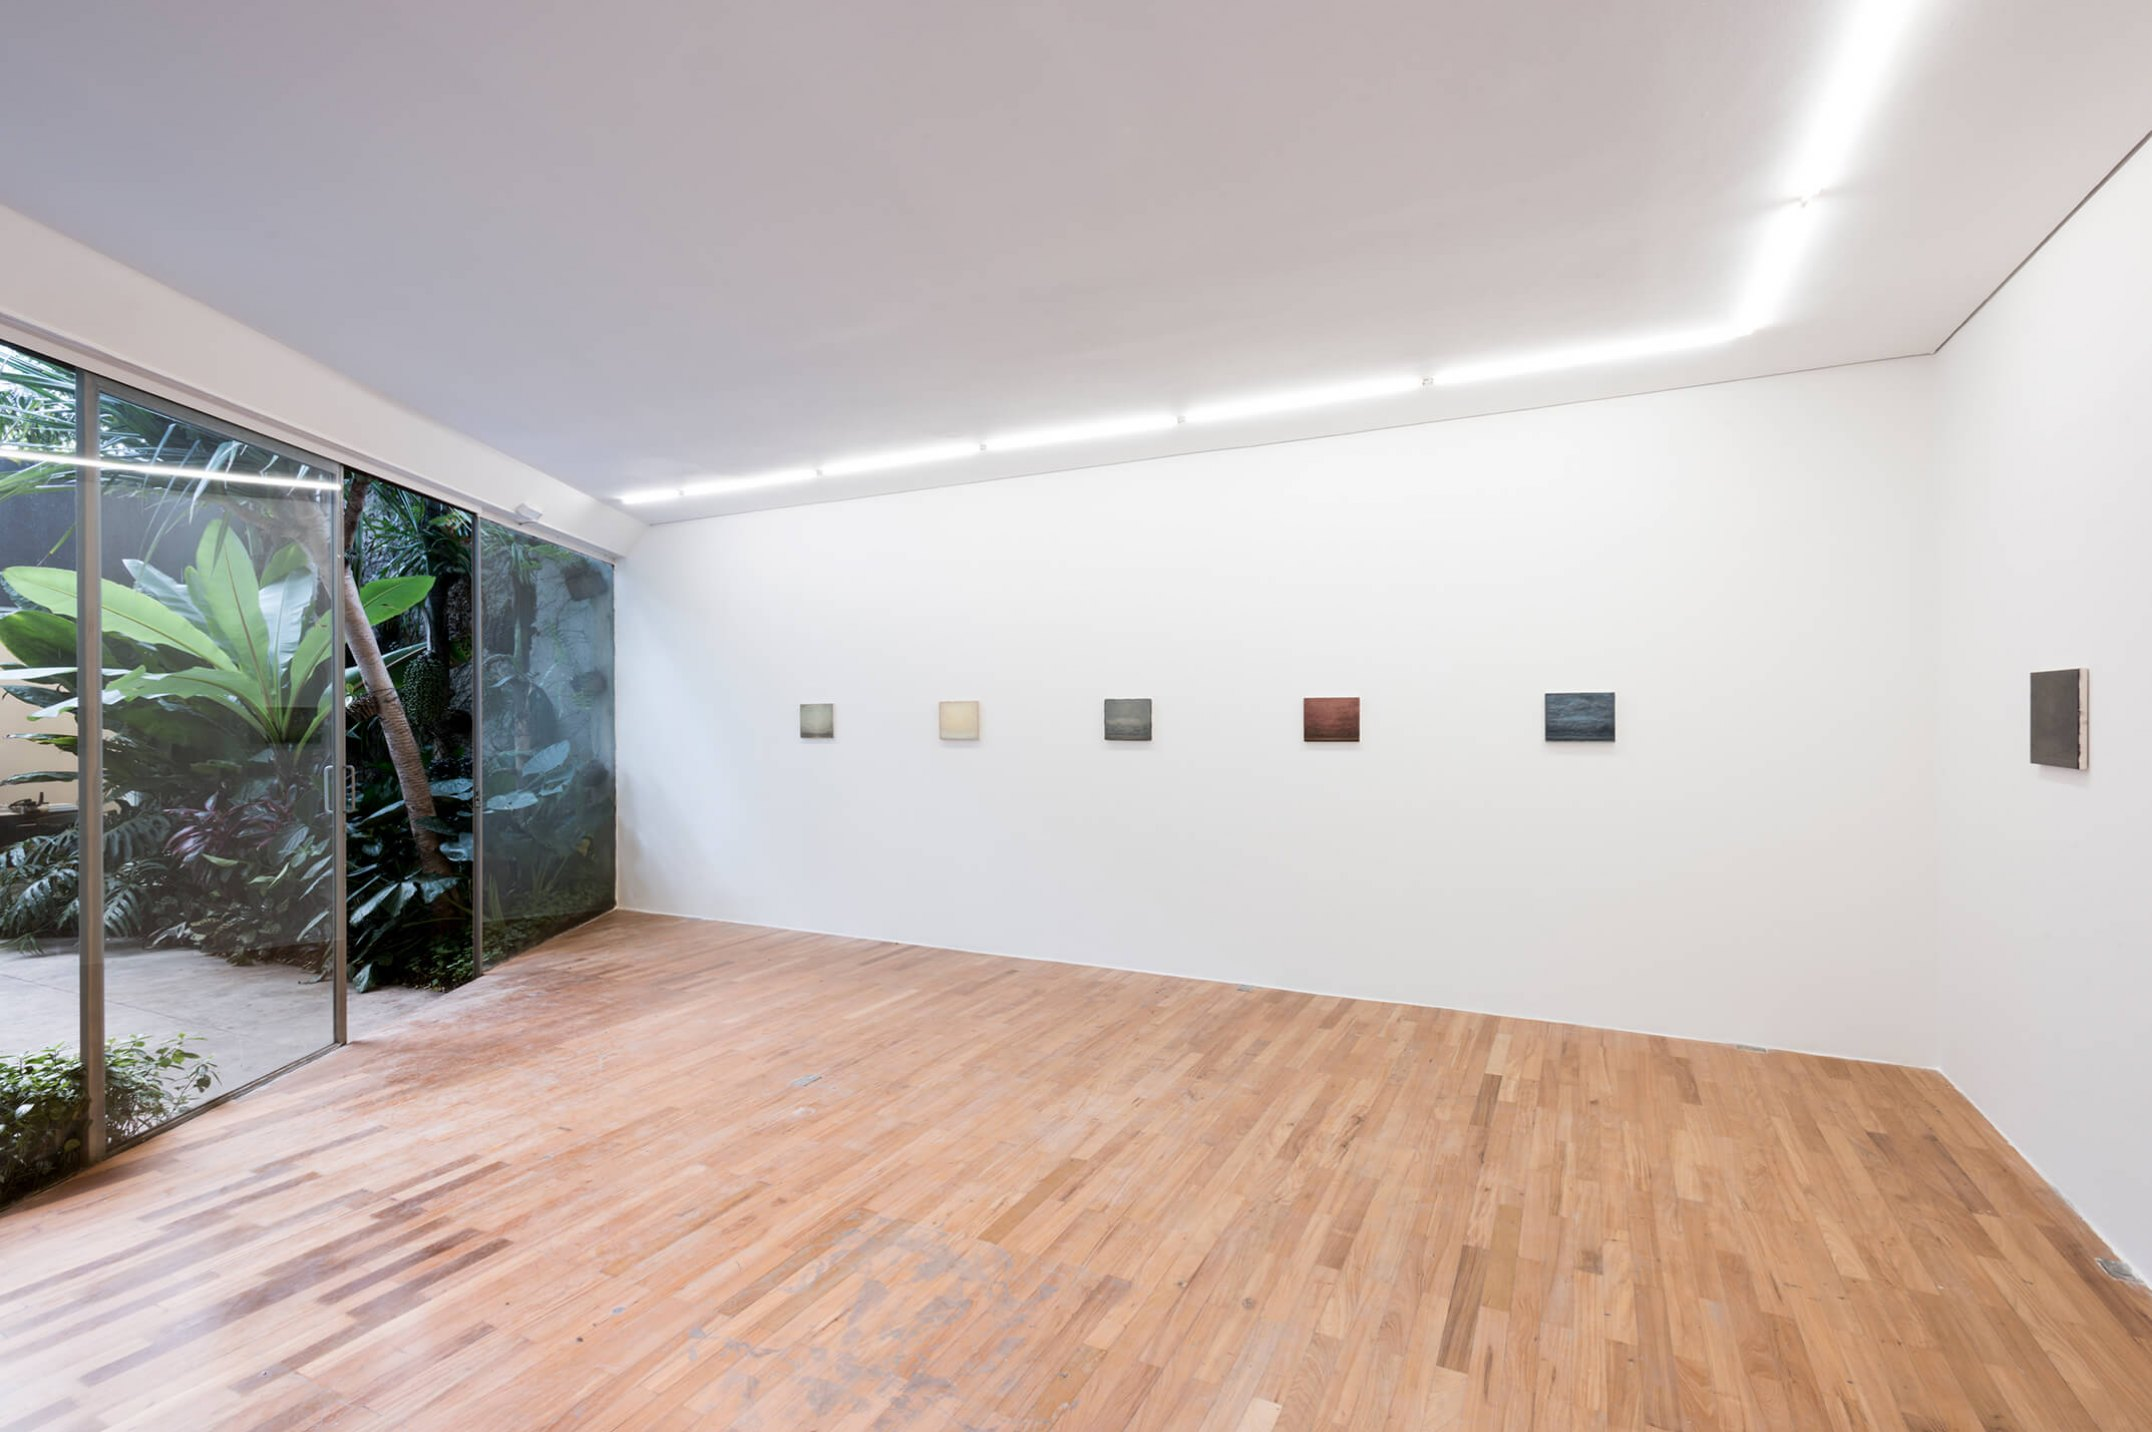 Lucas Arruda, <em>Deserto-Modelo as above so below,</em> Mendes Wood DM, São Paulo, 2016 - Mendes Wood DM